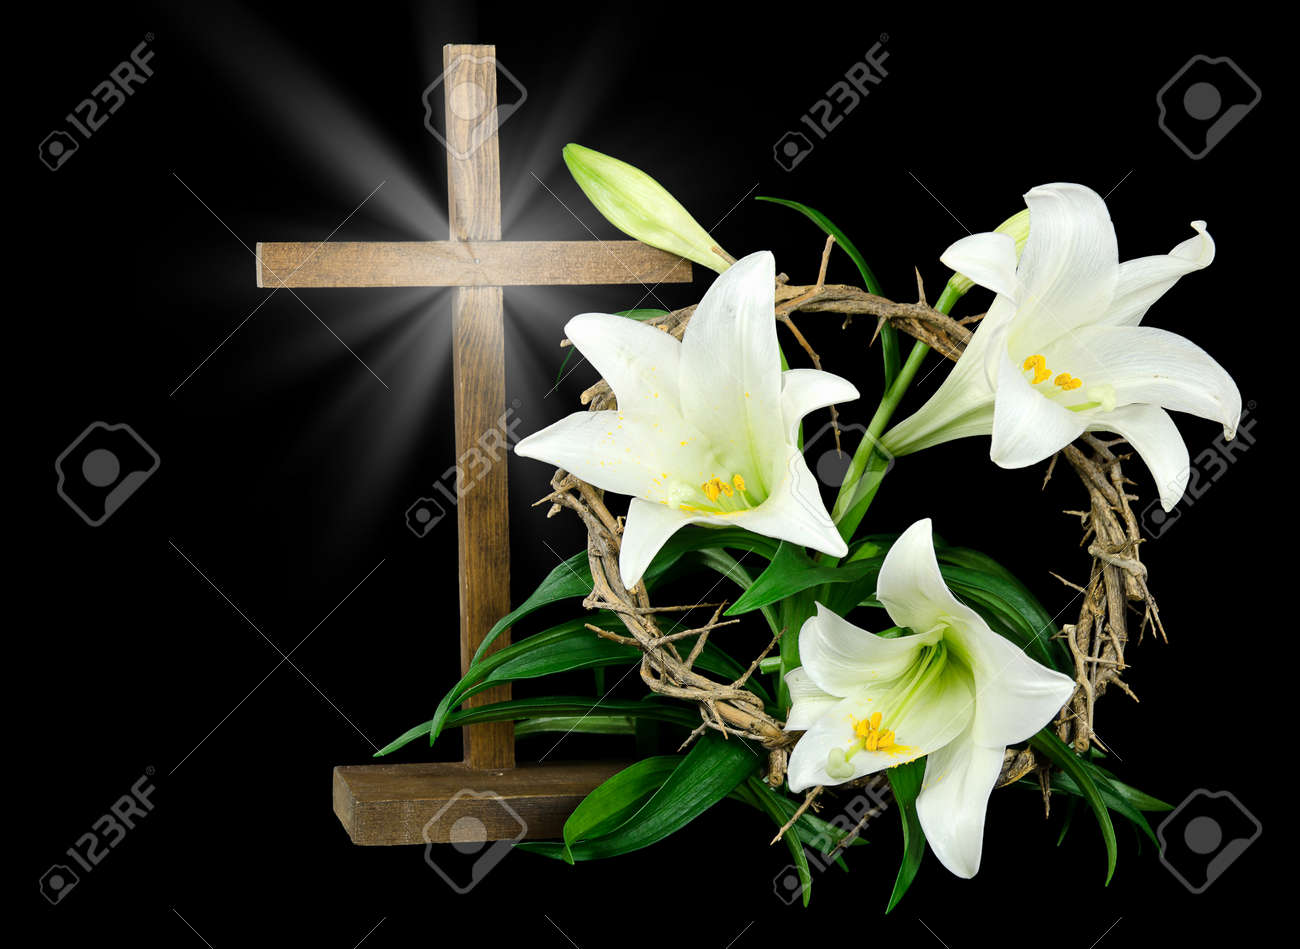 Easter lilies with cross and crown of thorns Stock Photo - 27994995